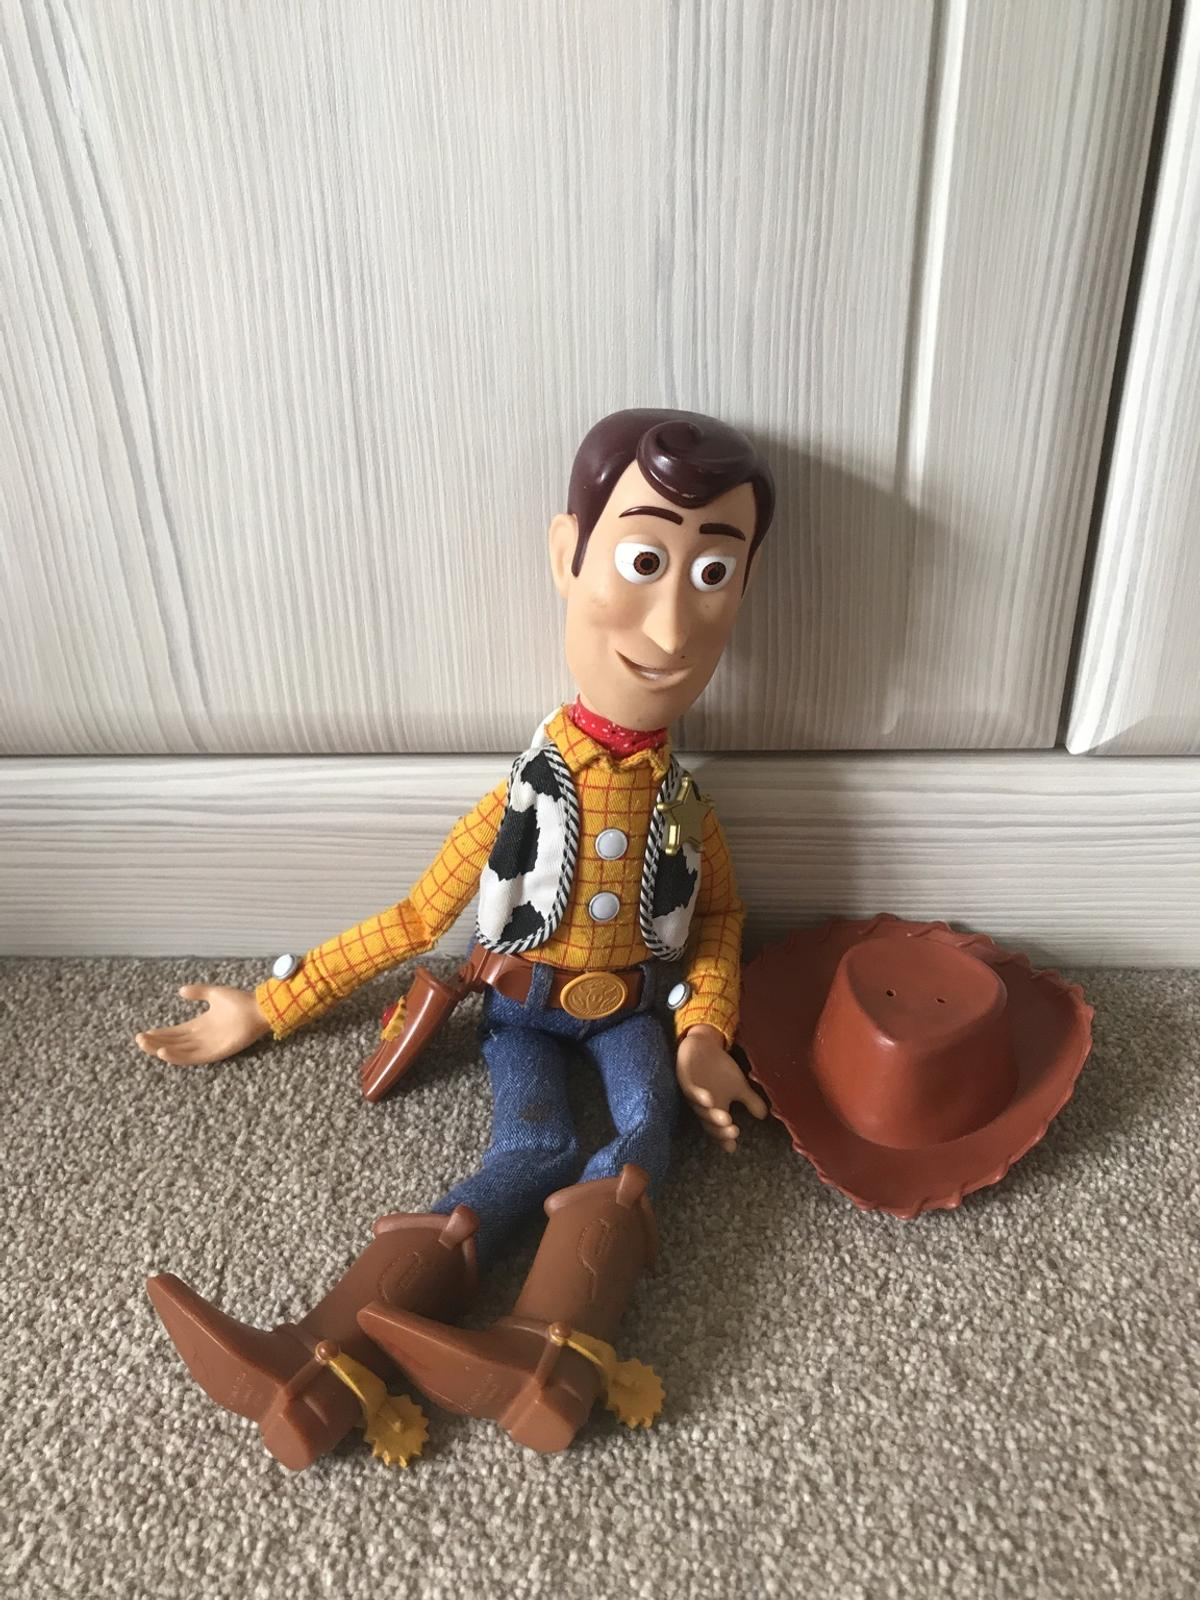 A well loved Woody. In good condition, with clear working voice box.